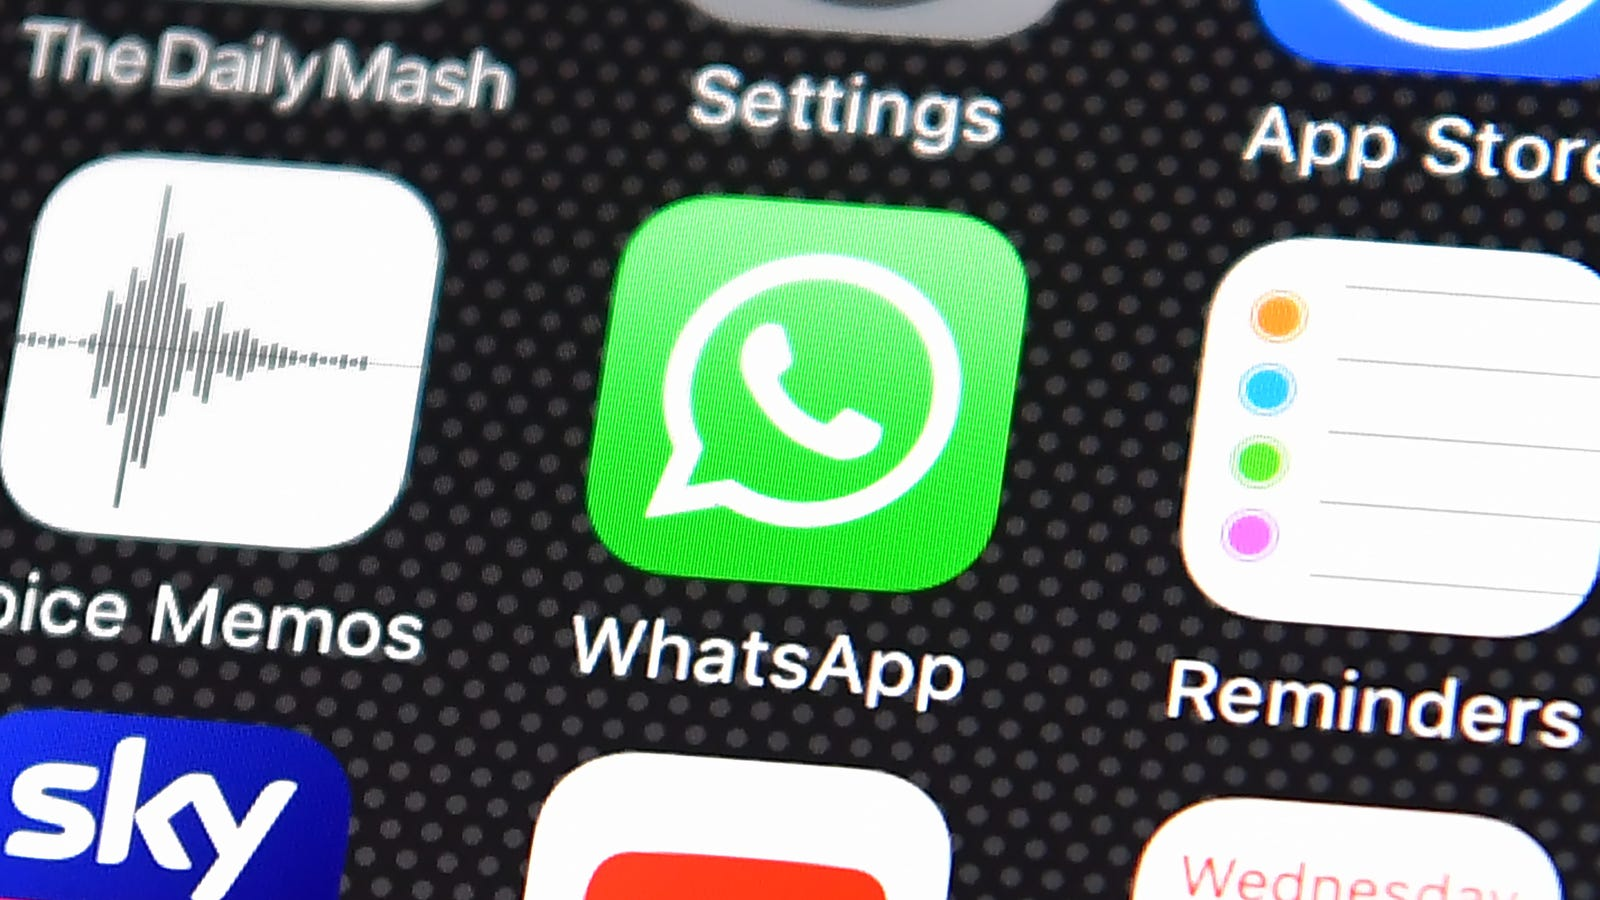 Cops in Wales Caught a Drug Dealer by IDing His Fingerprint from a WhatsApp Photo